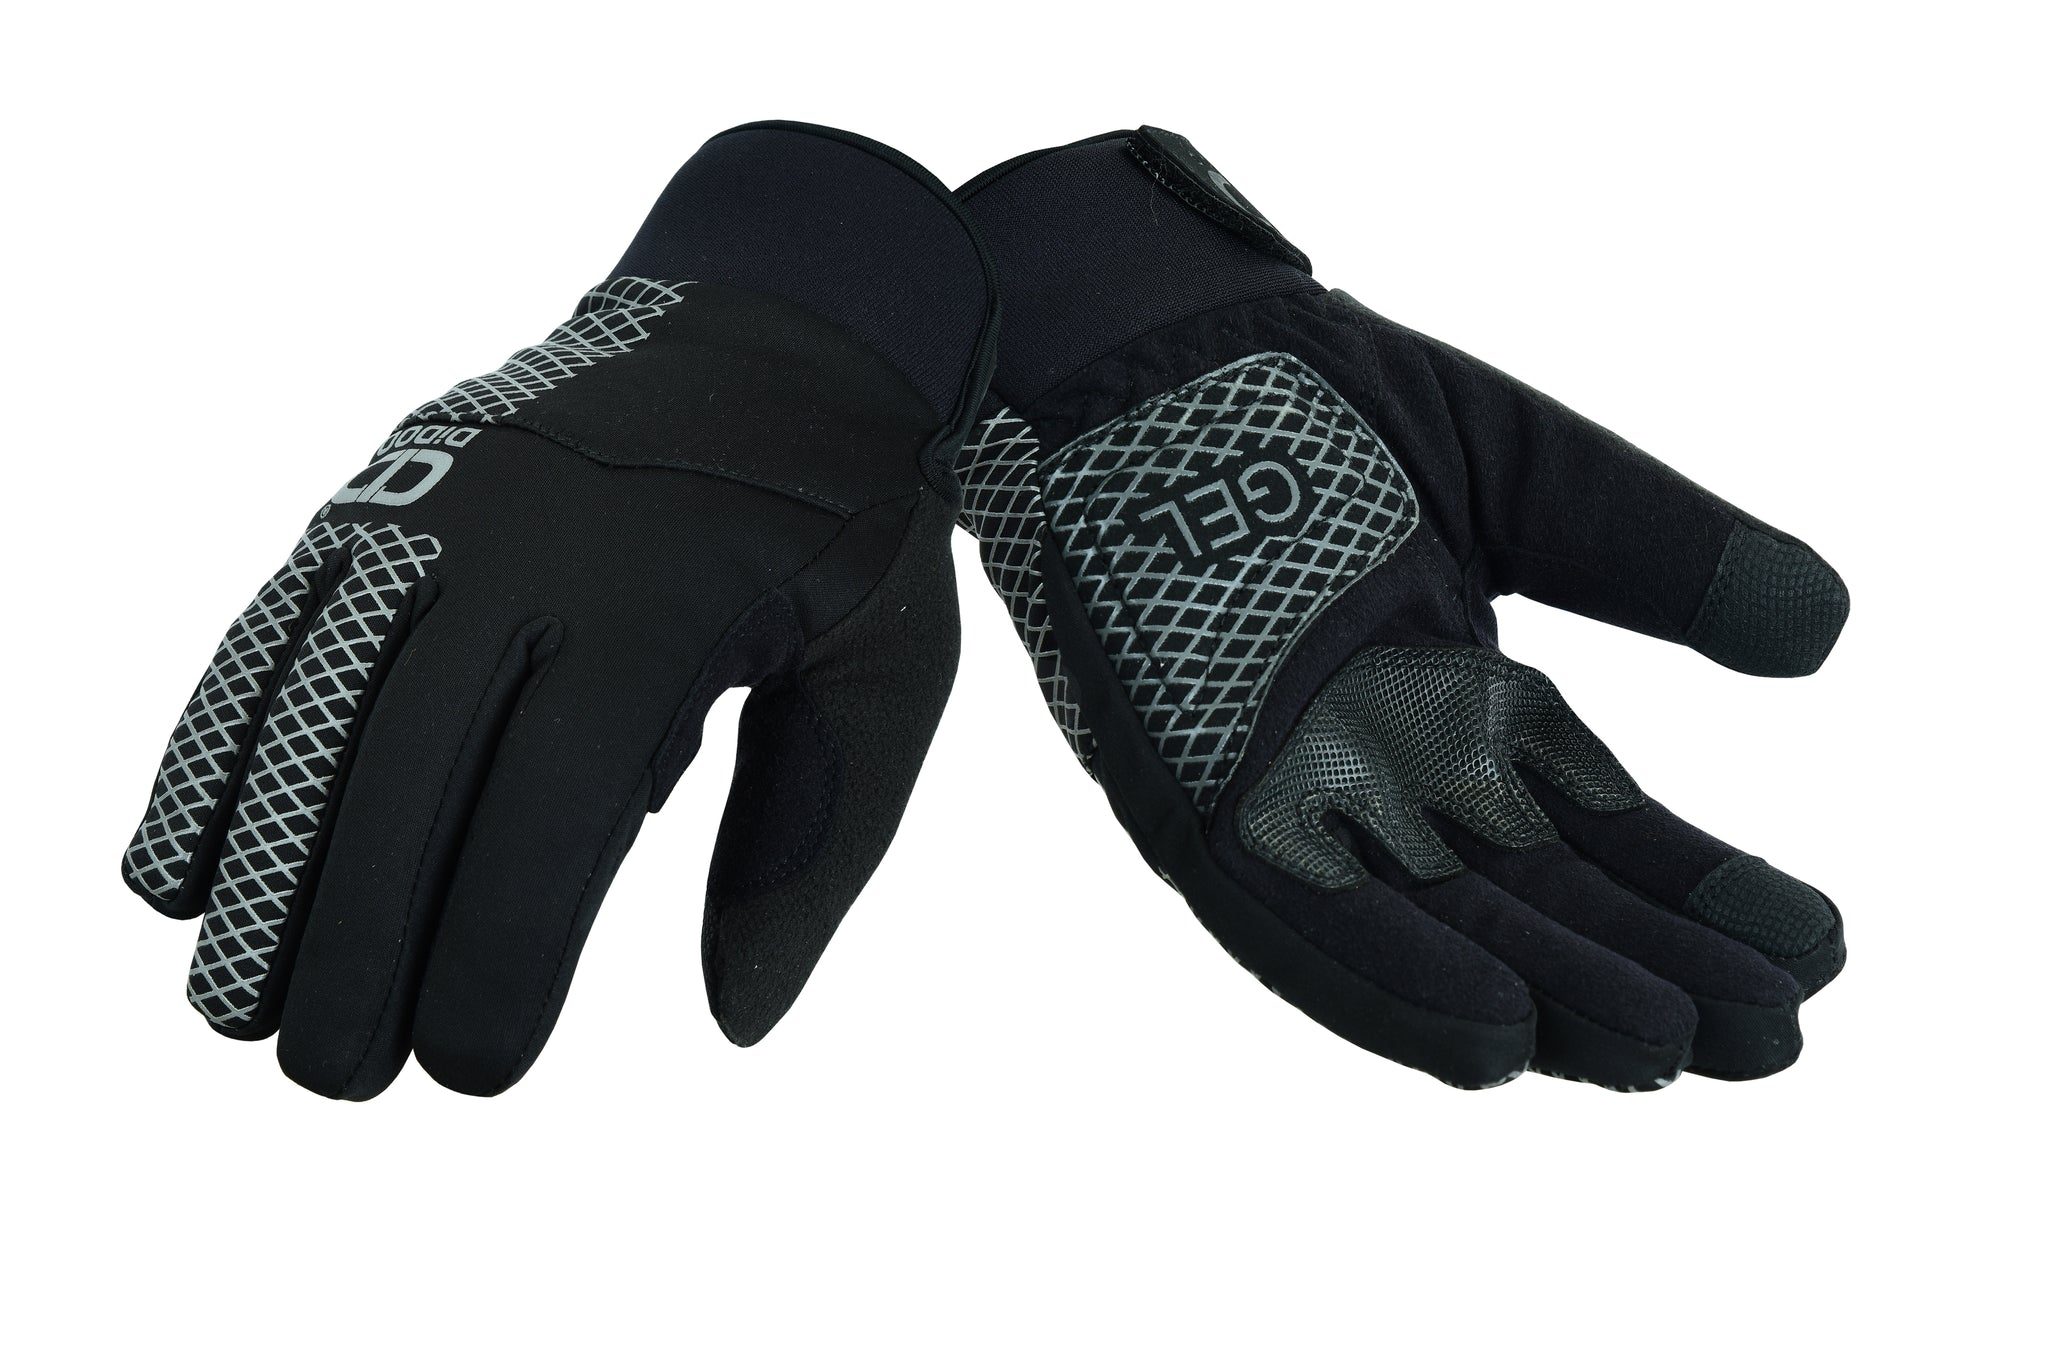 Women's Pro Waterproof & Wind Resistant Winter Gloves Black